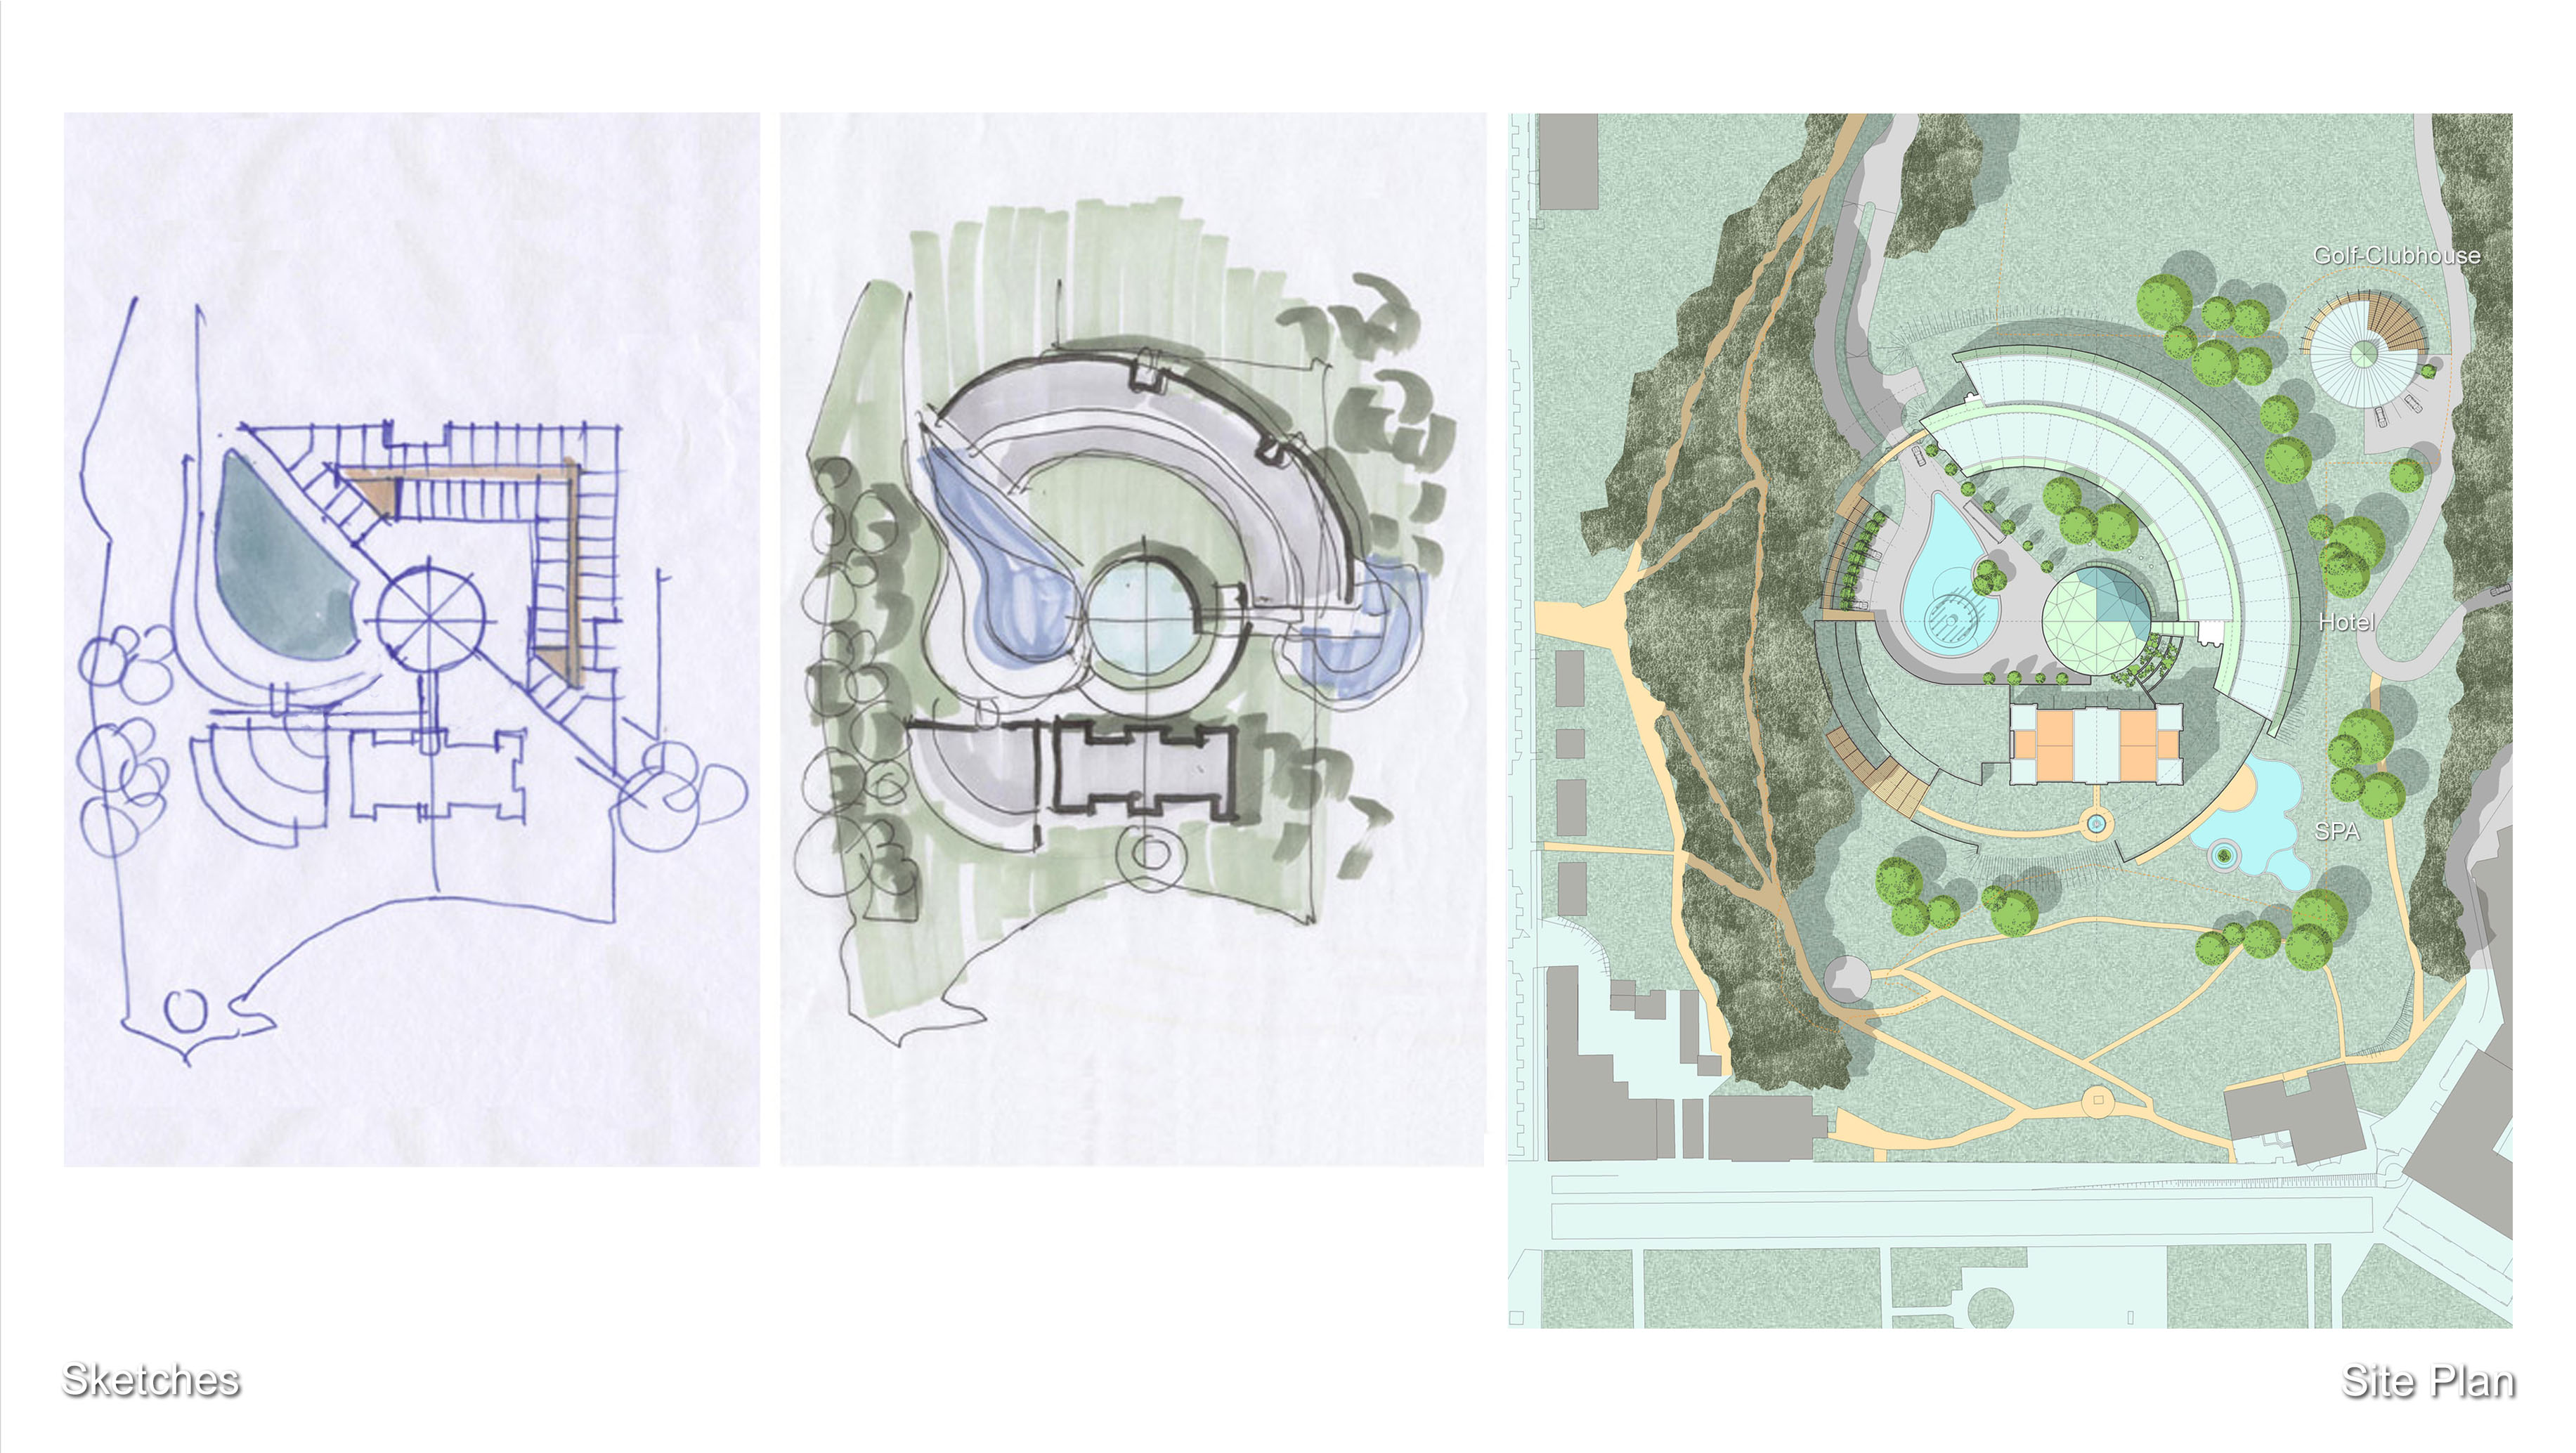 4_Sketches, Site Plan